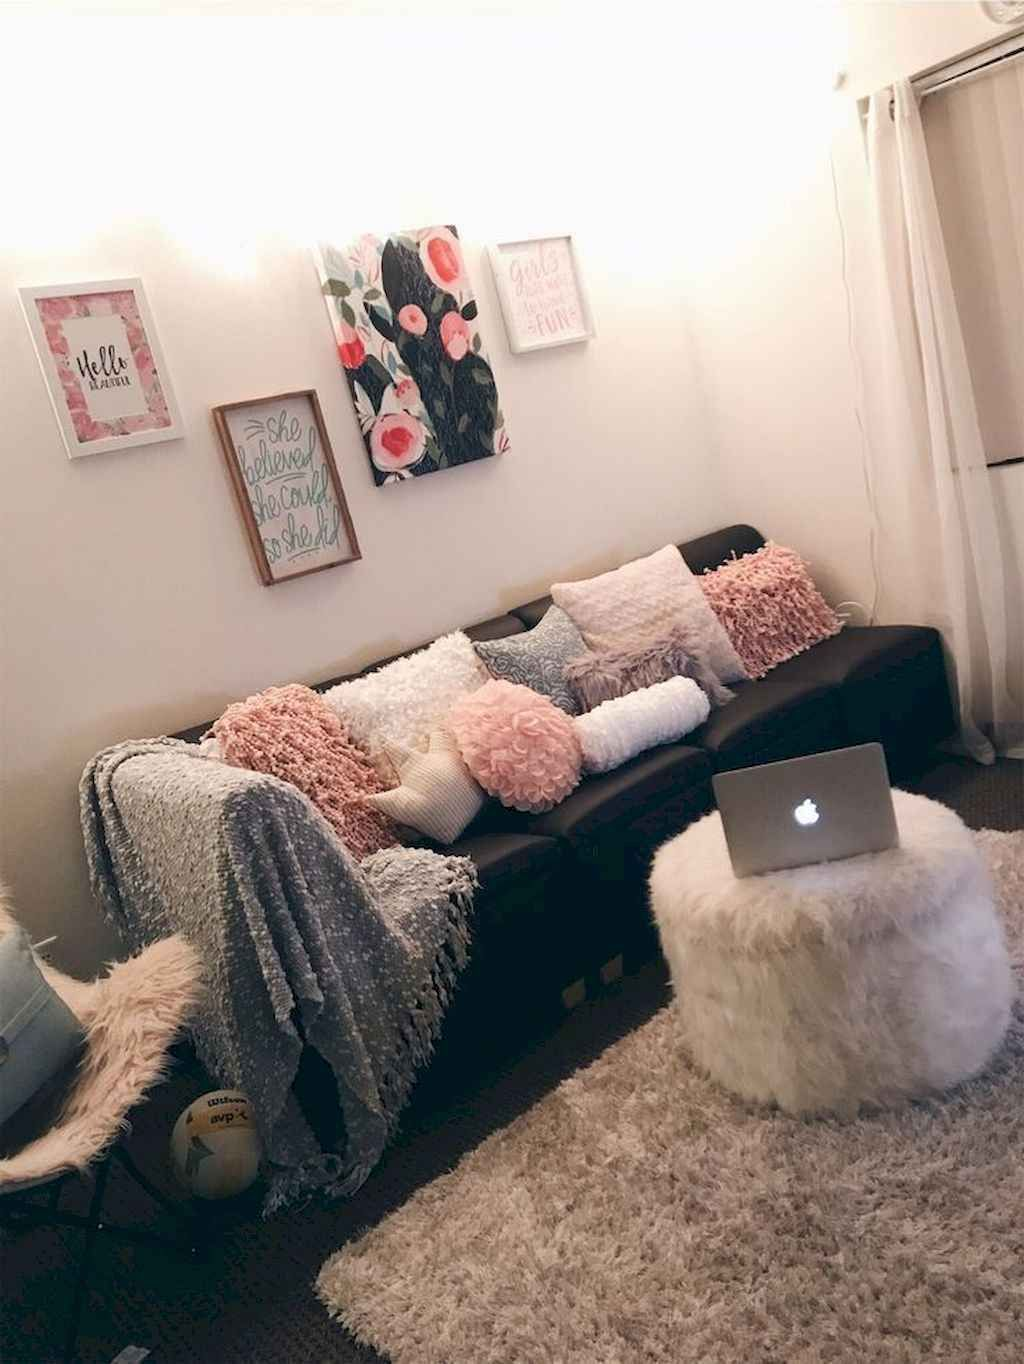 70 College Apartment Decorating Ideas On A Budget First Apartment Decorating Small Apartment Decorating College Living Rooms